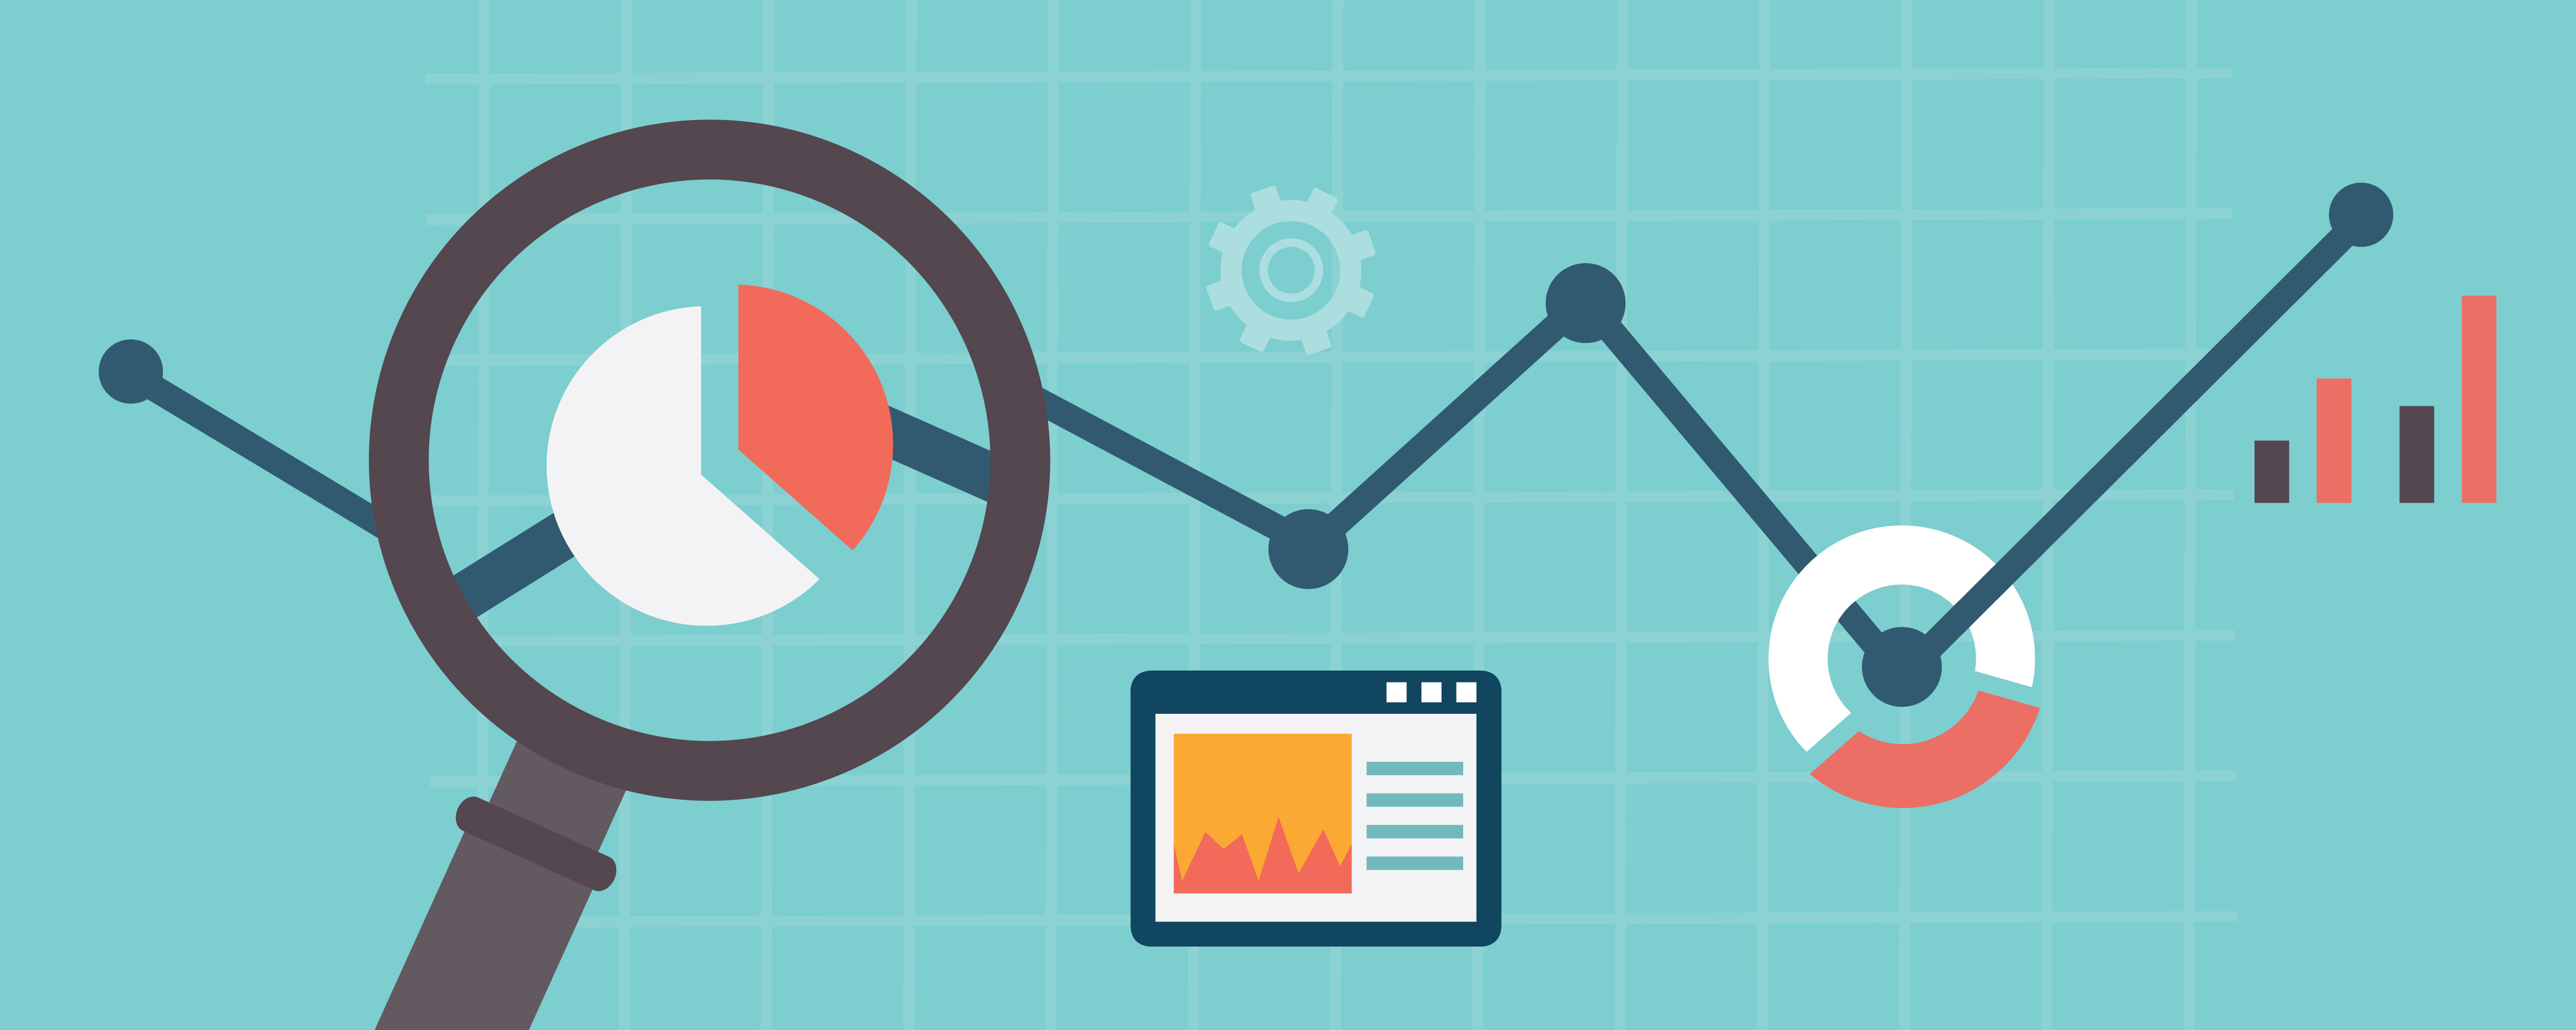 Generate More Sales With These SEO Tips That Rank You Higher